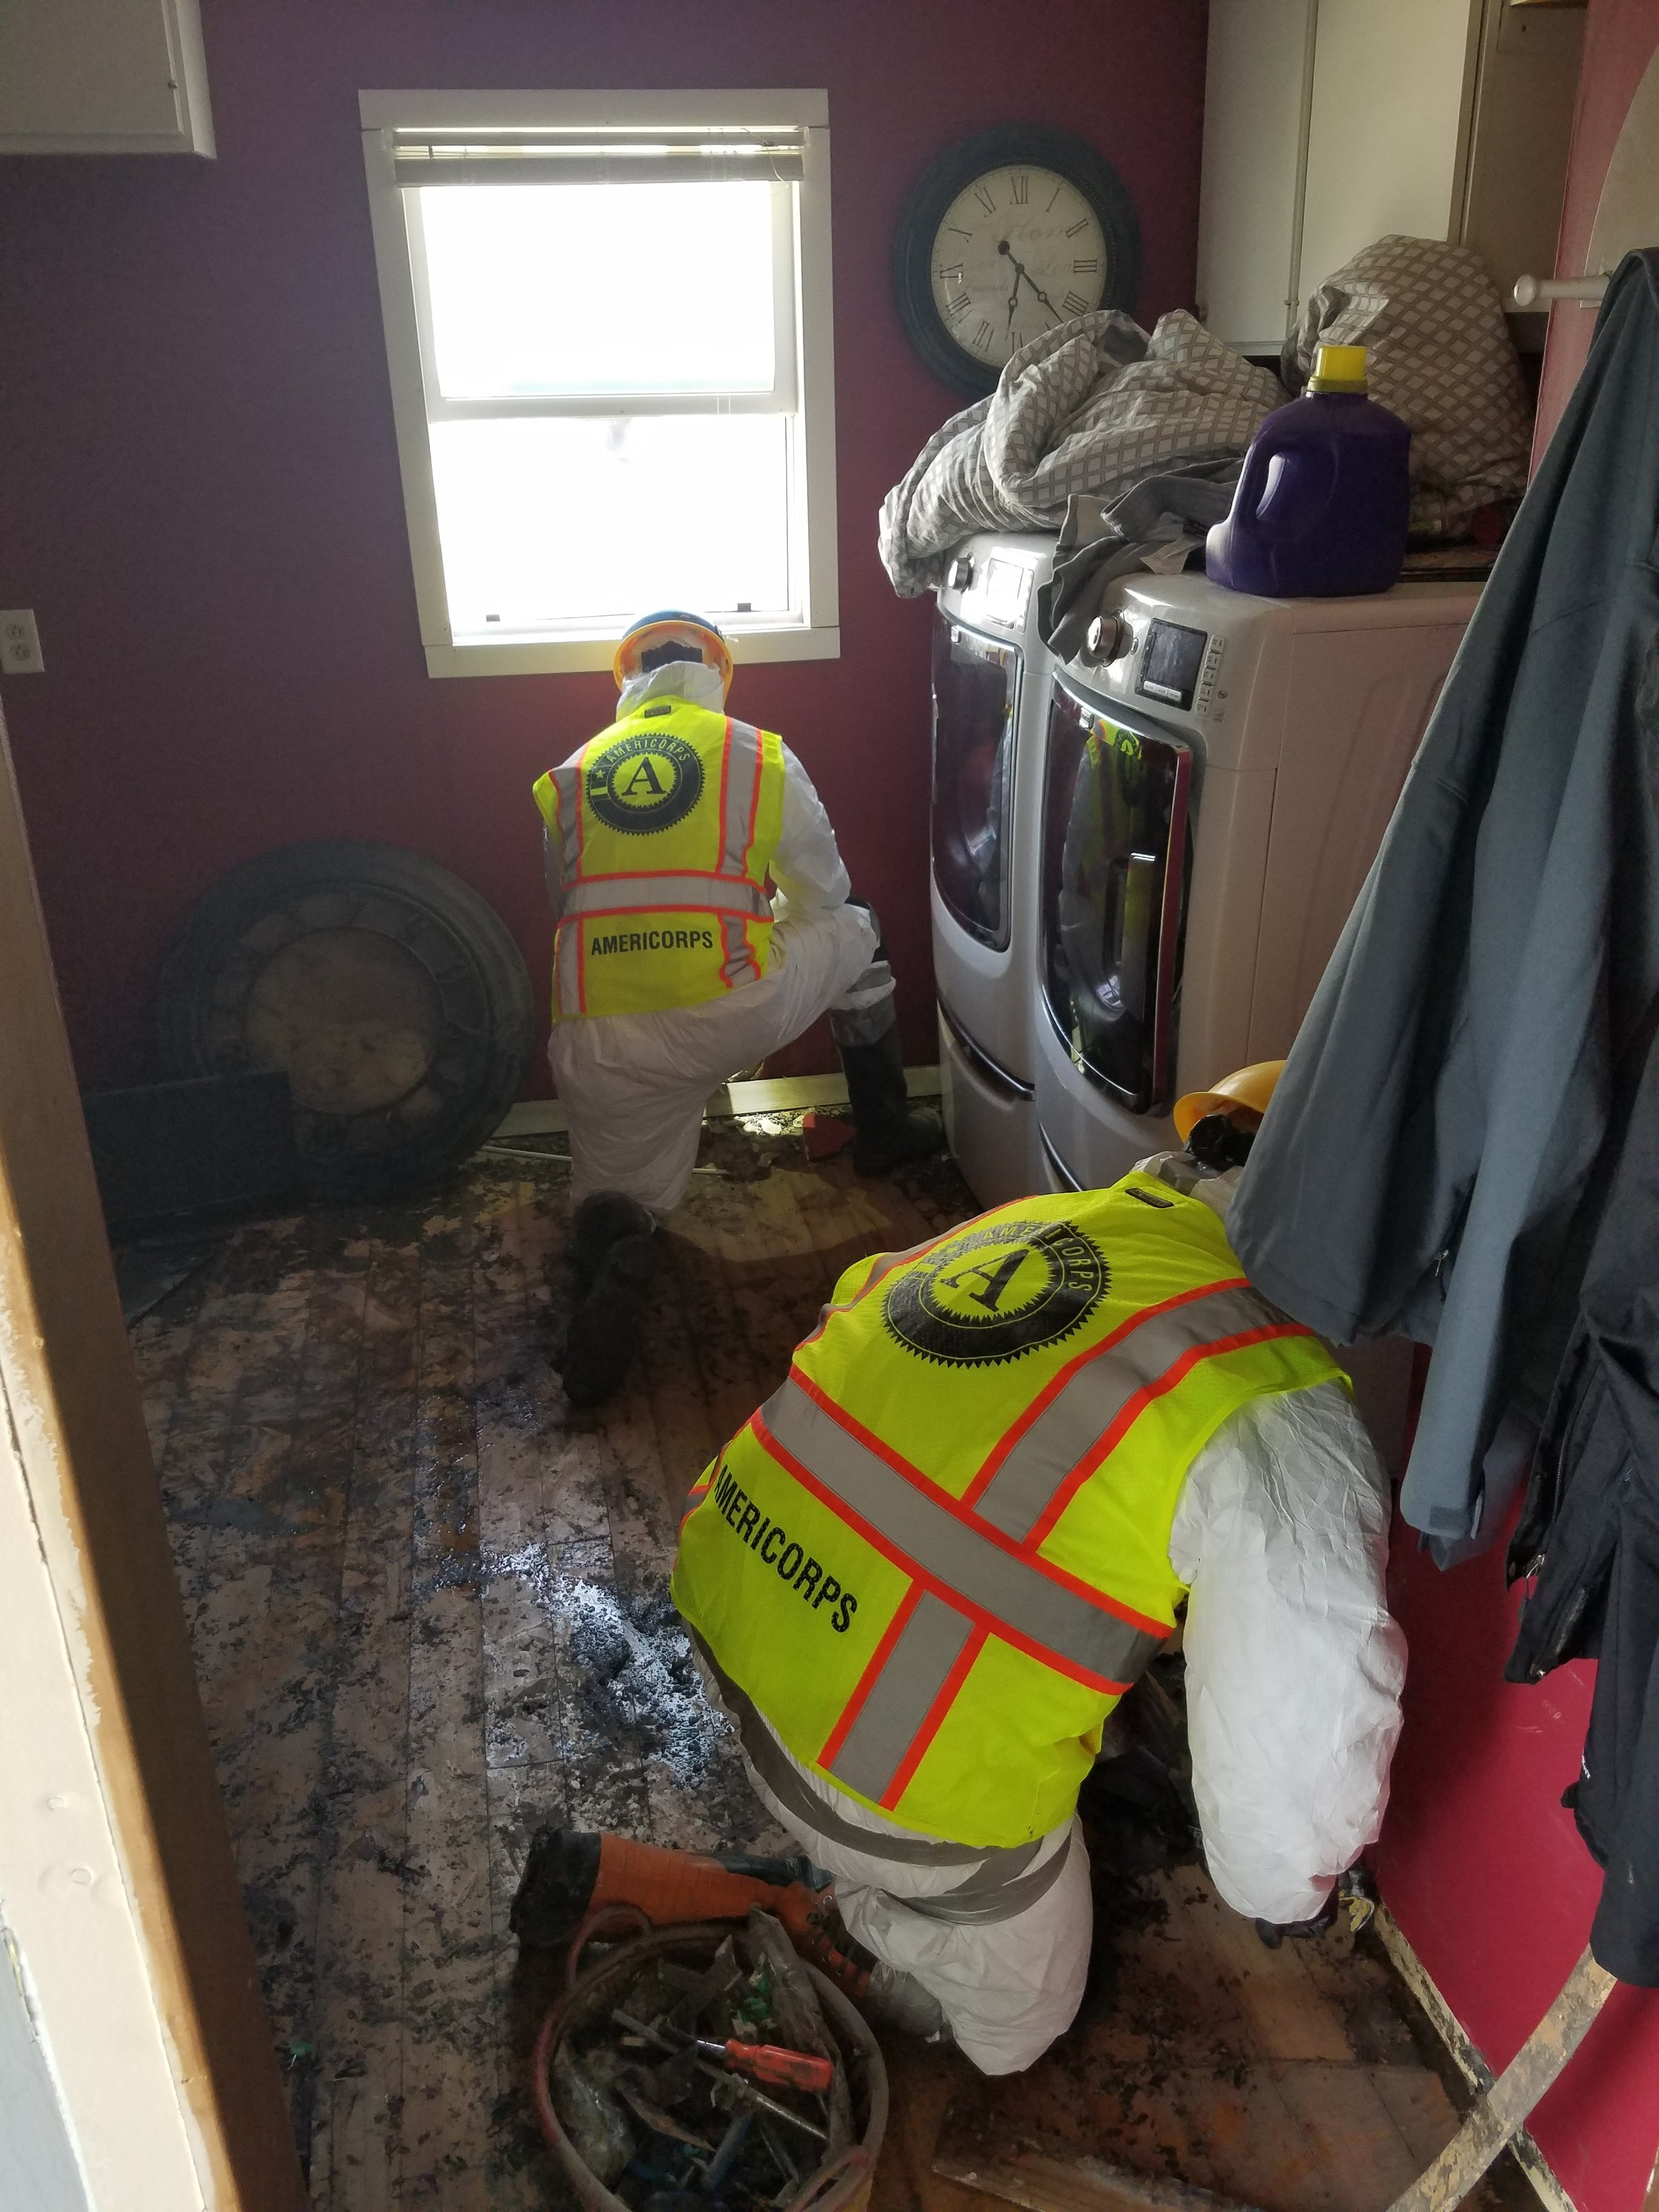 In April 2019, Conservation Corps Minnesota & Iowa AmeriCorps members mitigated flooding damage in homes by providing services such as mold suppression and mucking/gutting.